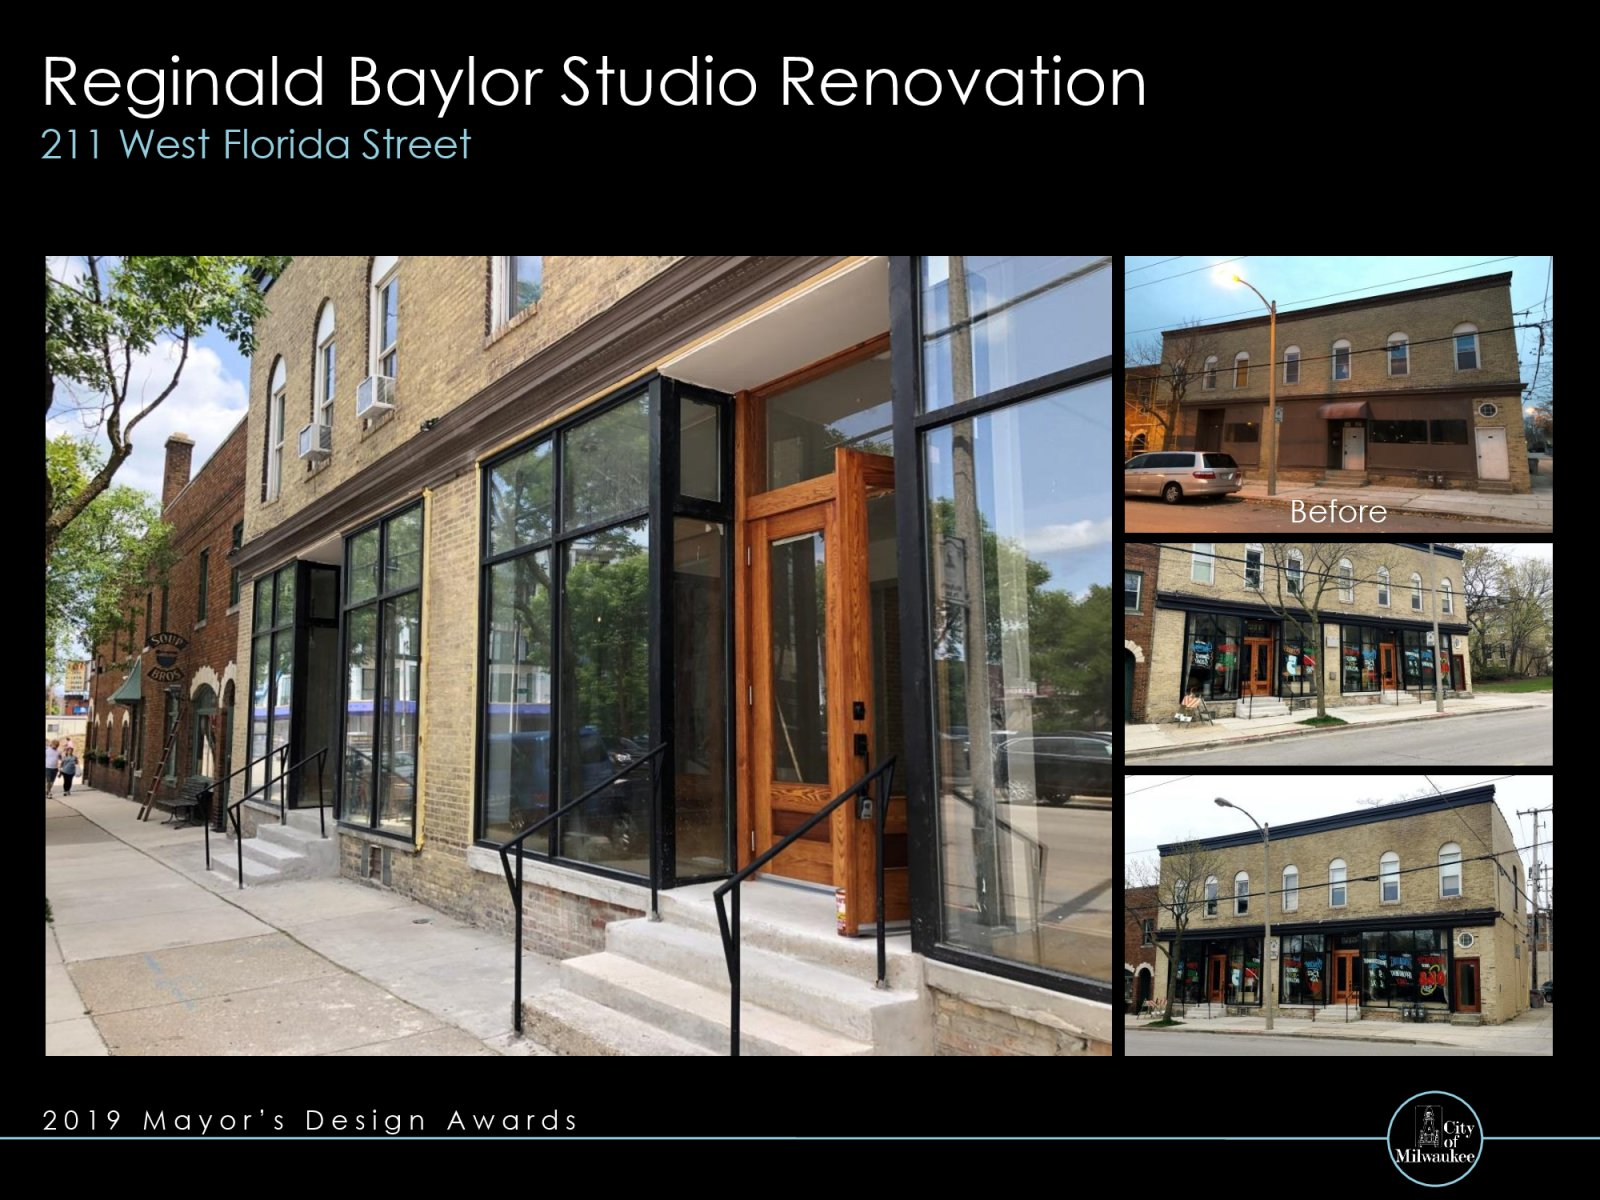 Reginald Baylor Studio